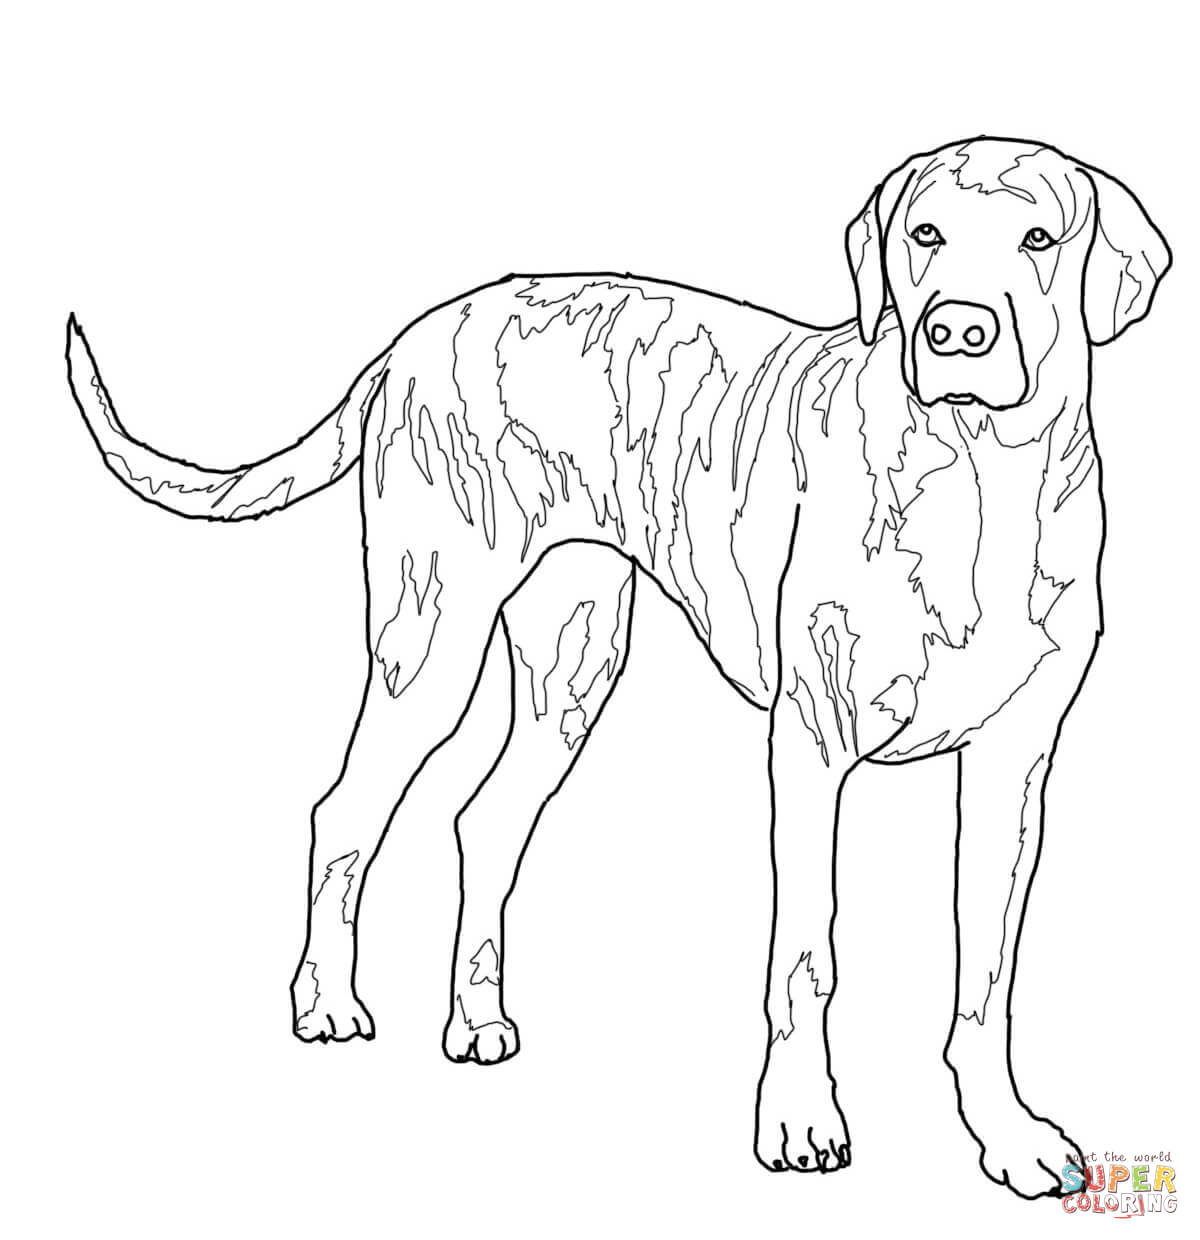 fox and hound coloring pages - photo#27